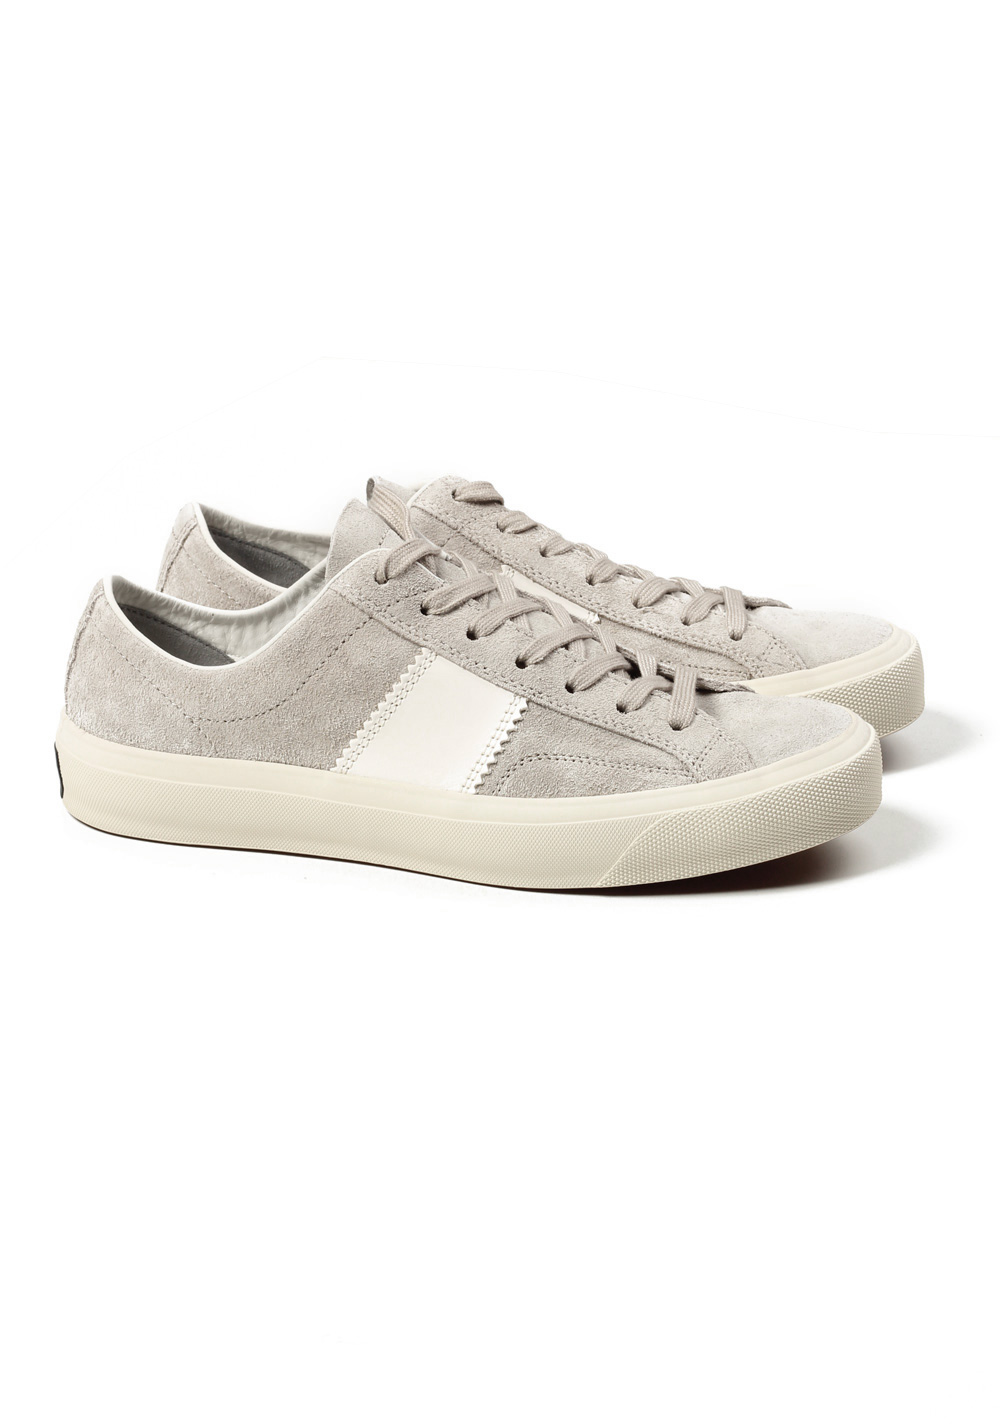 TOM FORD Cambridge Lace Up Gray Suede